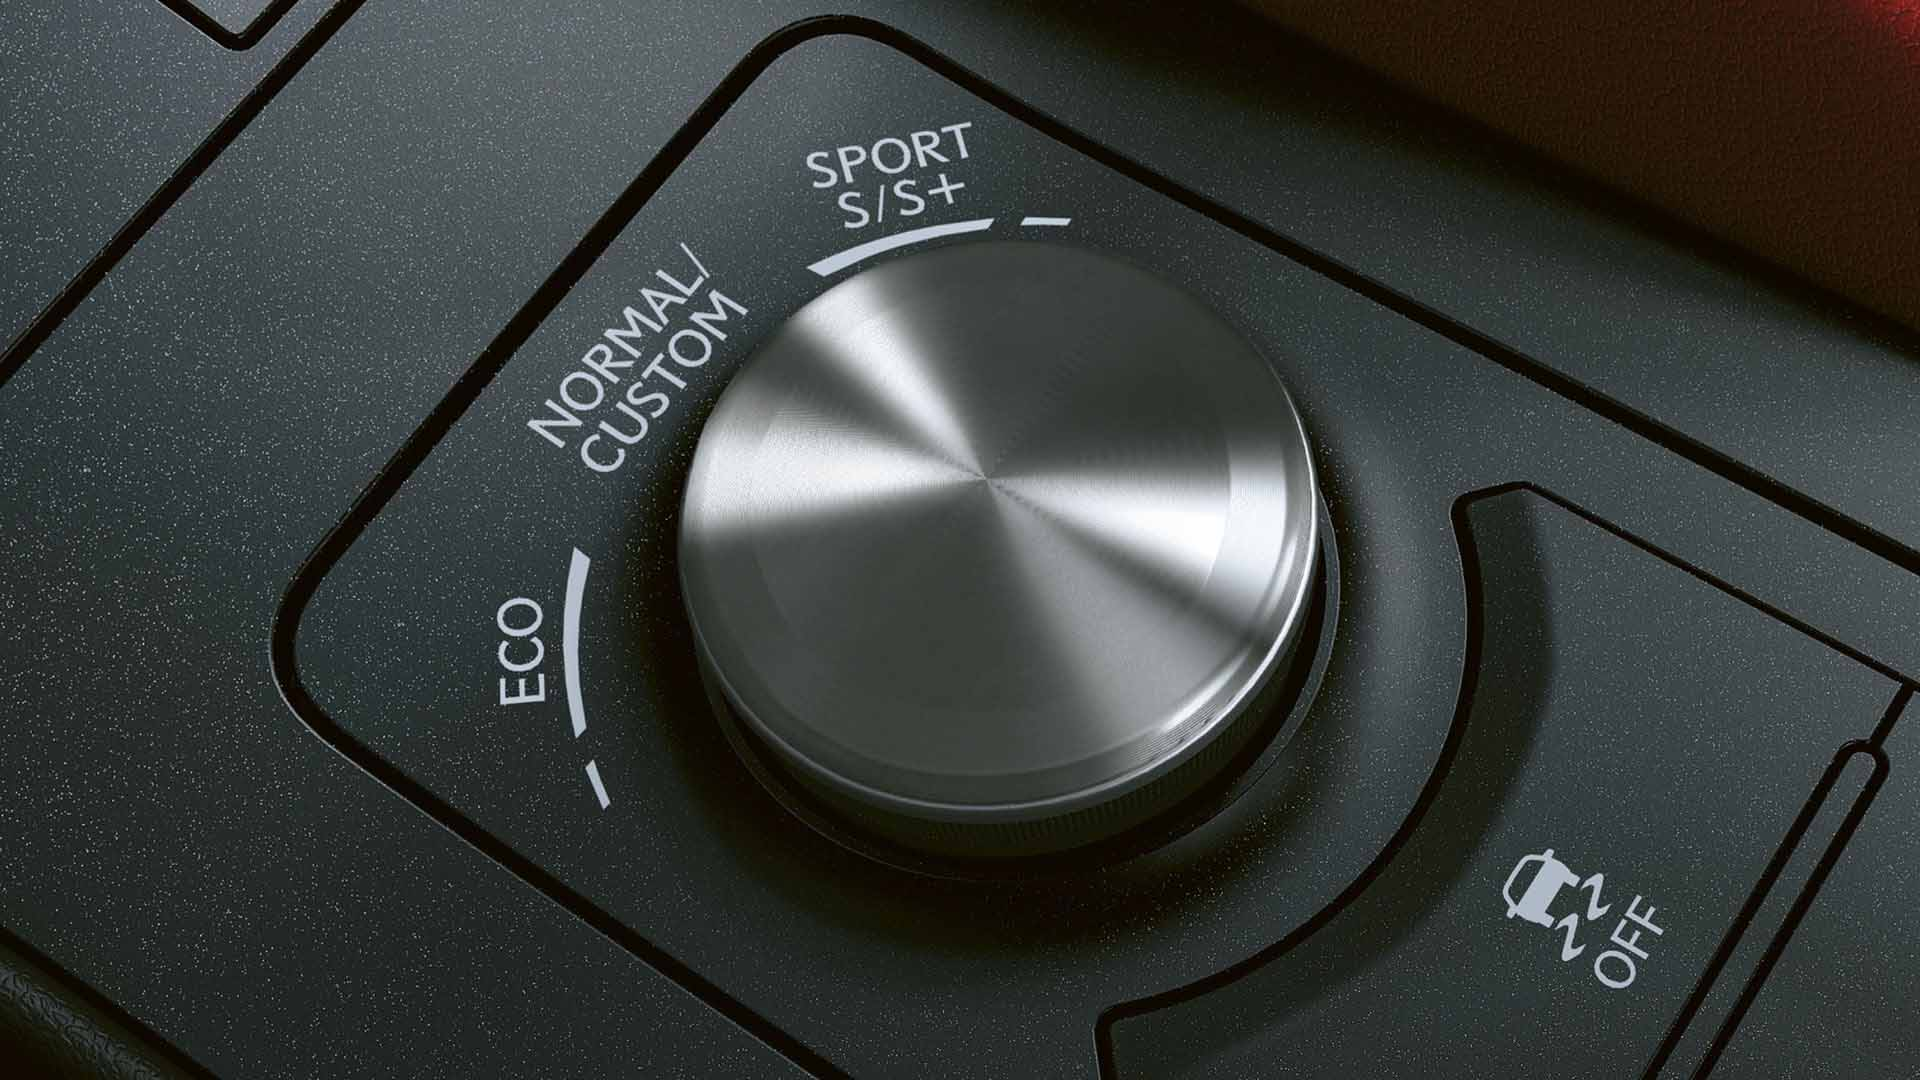 2018 lexus rc hotspot drive mode select 1920x1080 v2